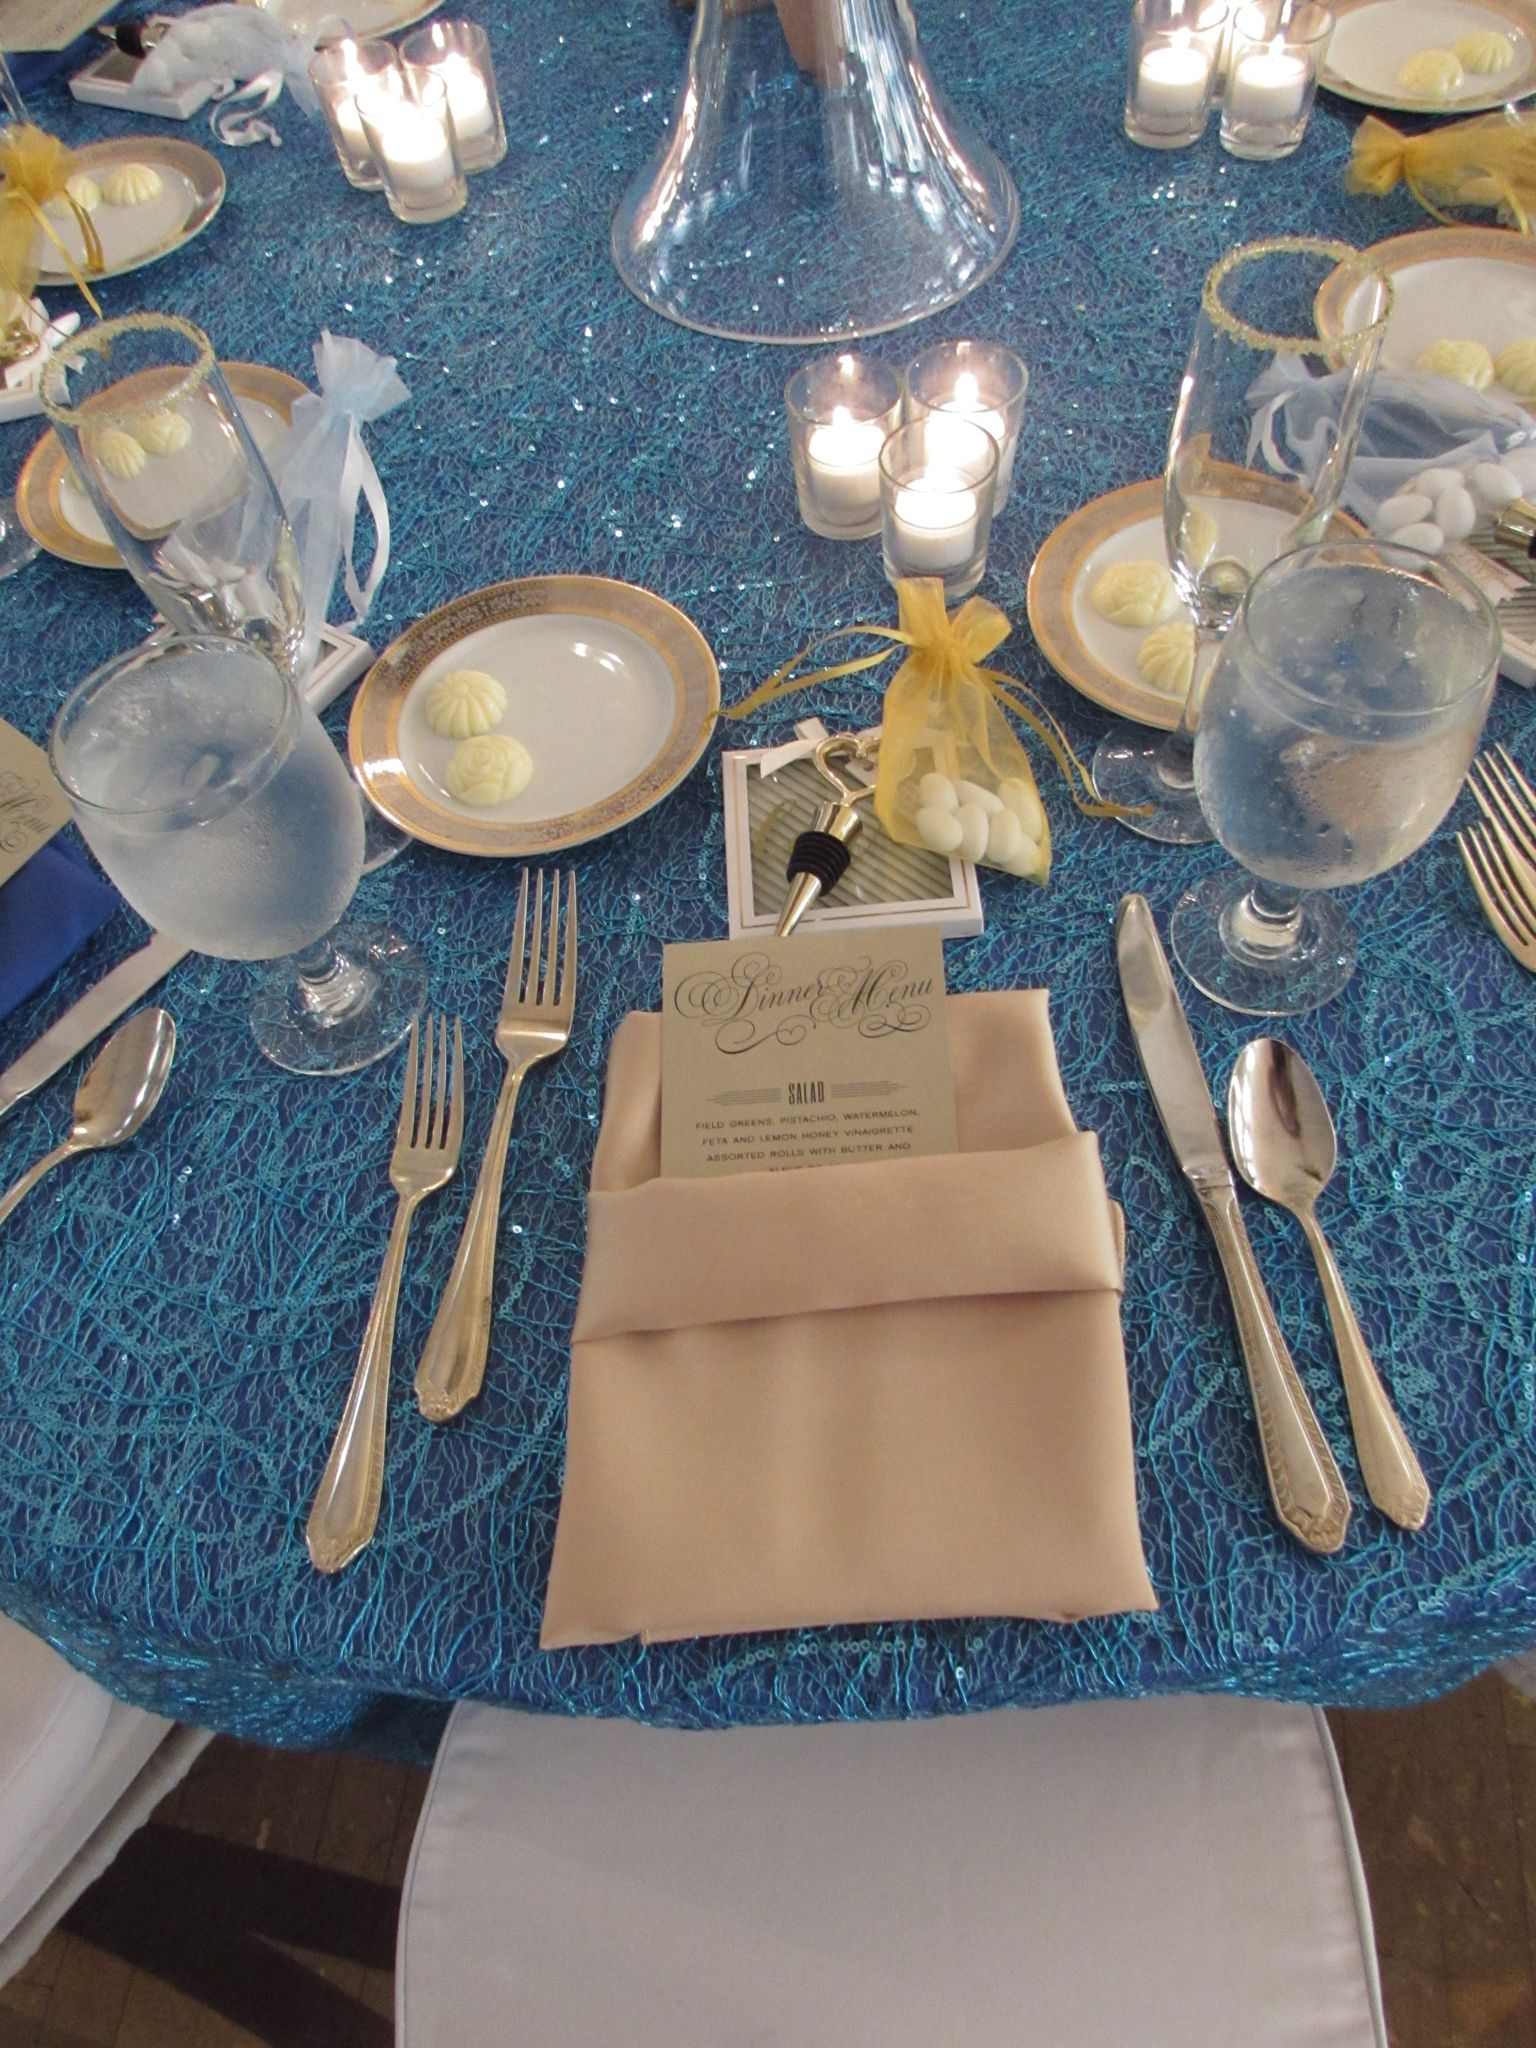 Event design by Kathy Piech-Lukas of Your Dream Day, linens by Prime Time Party Rental, stationery by Paper Pod Designs